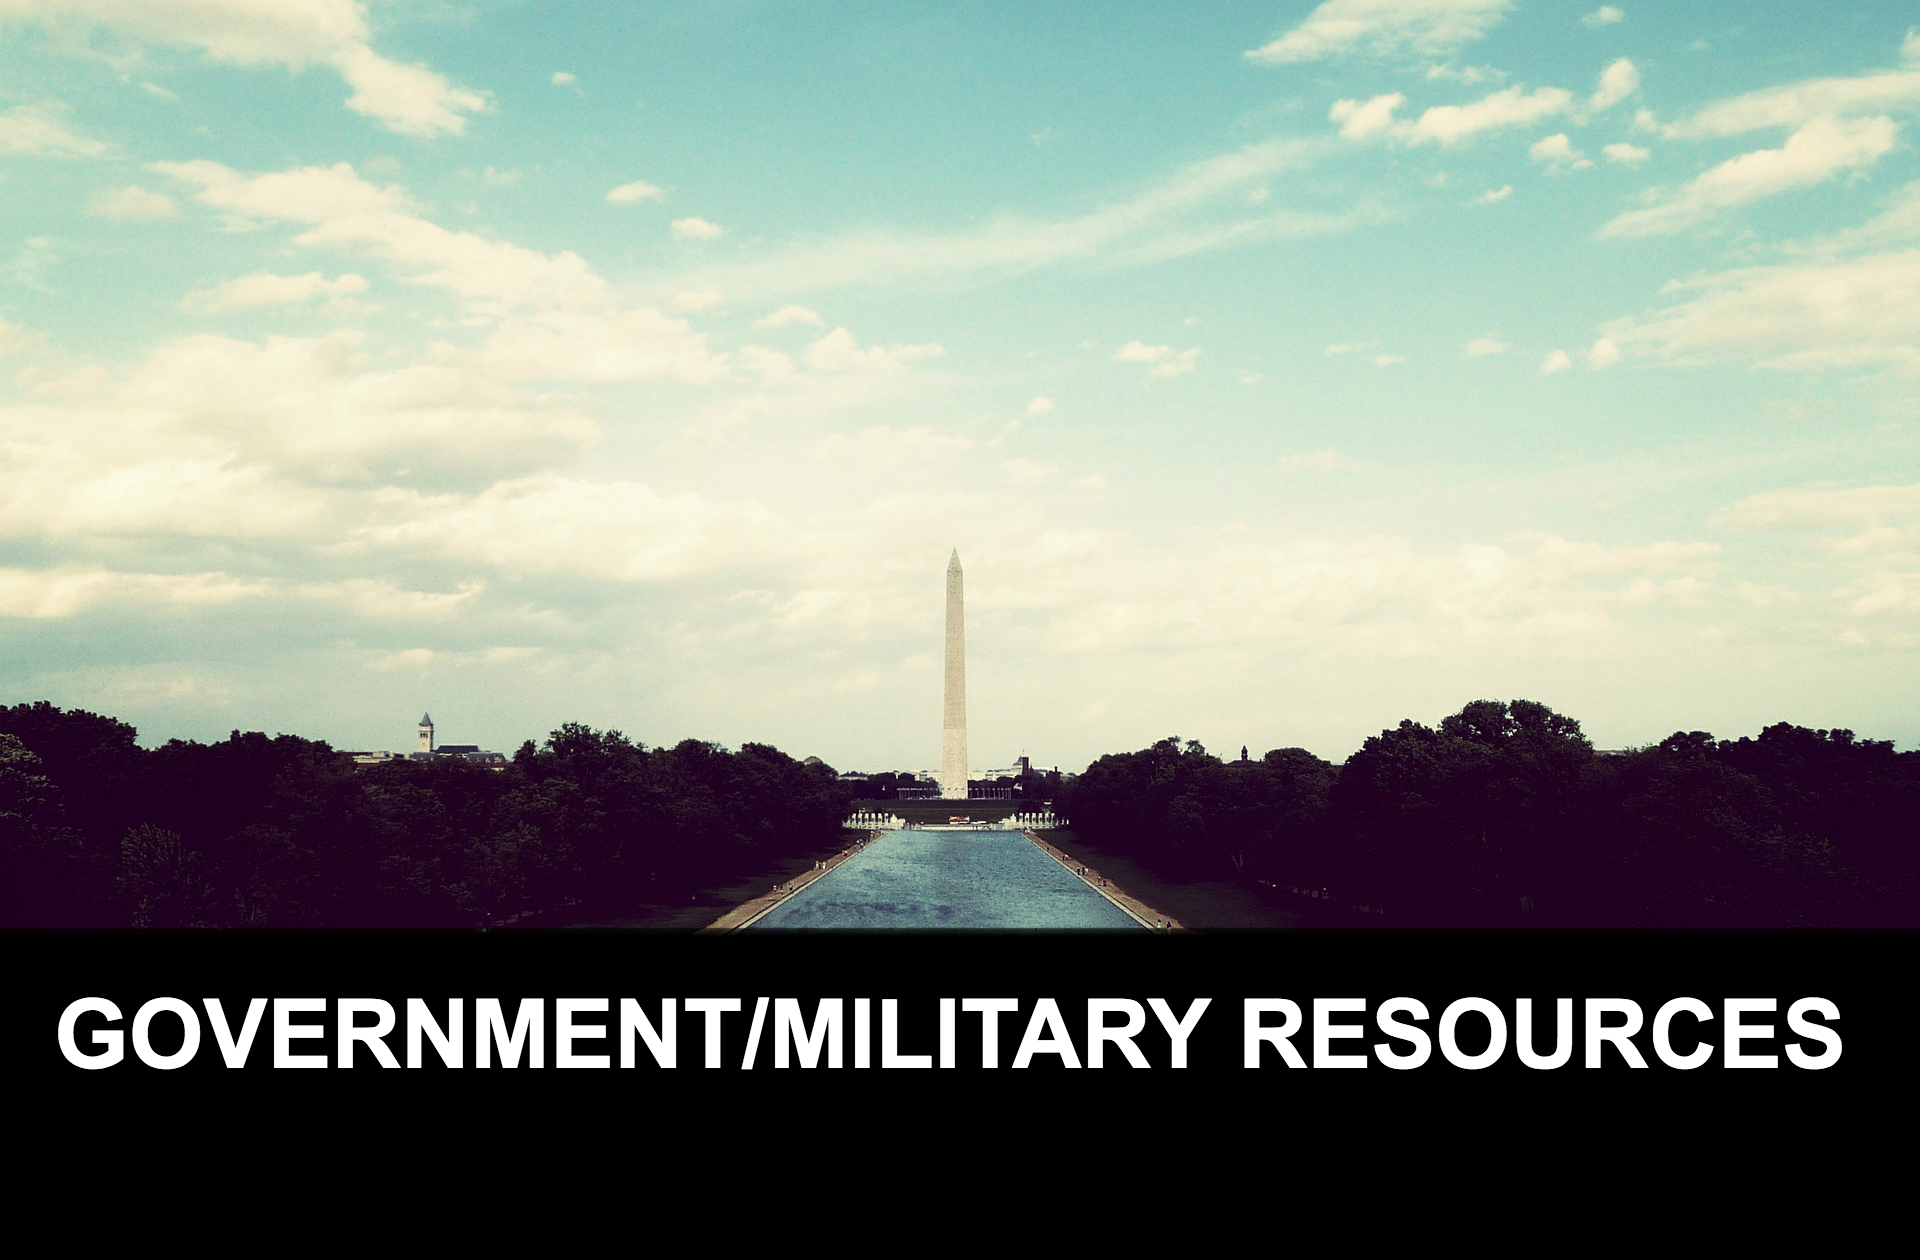 GOV-MIL RESOURCES